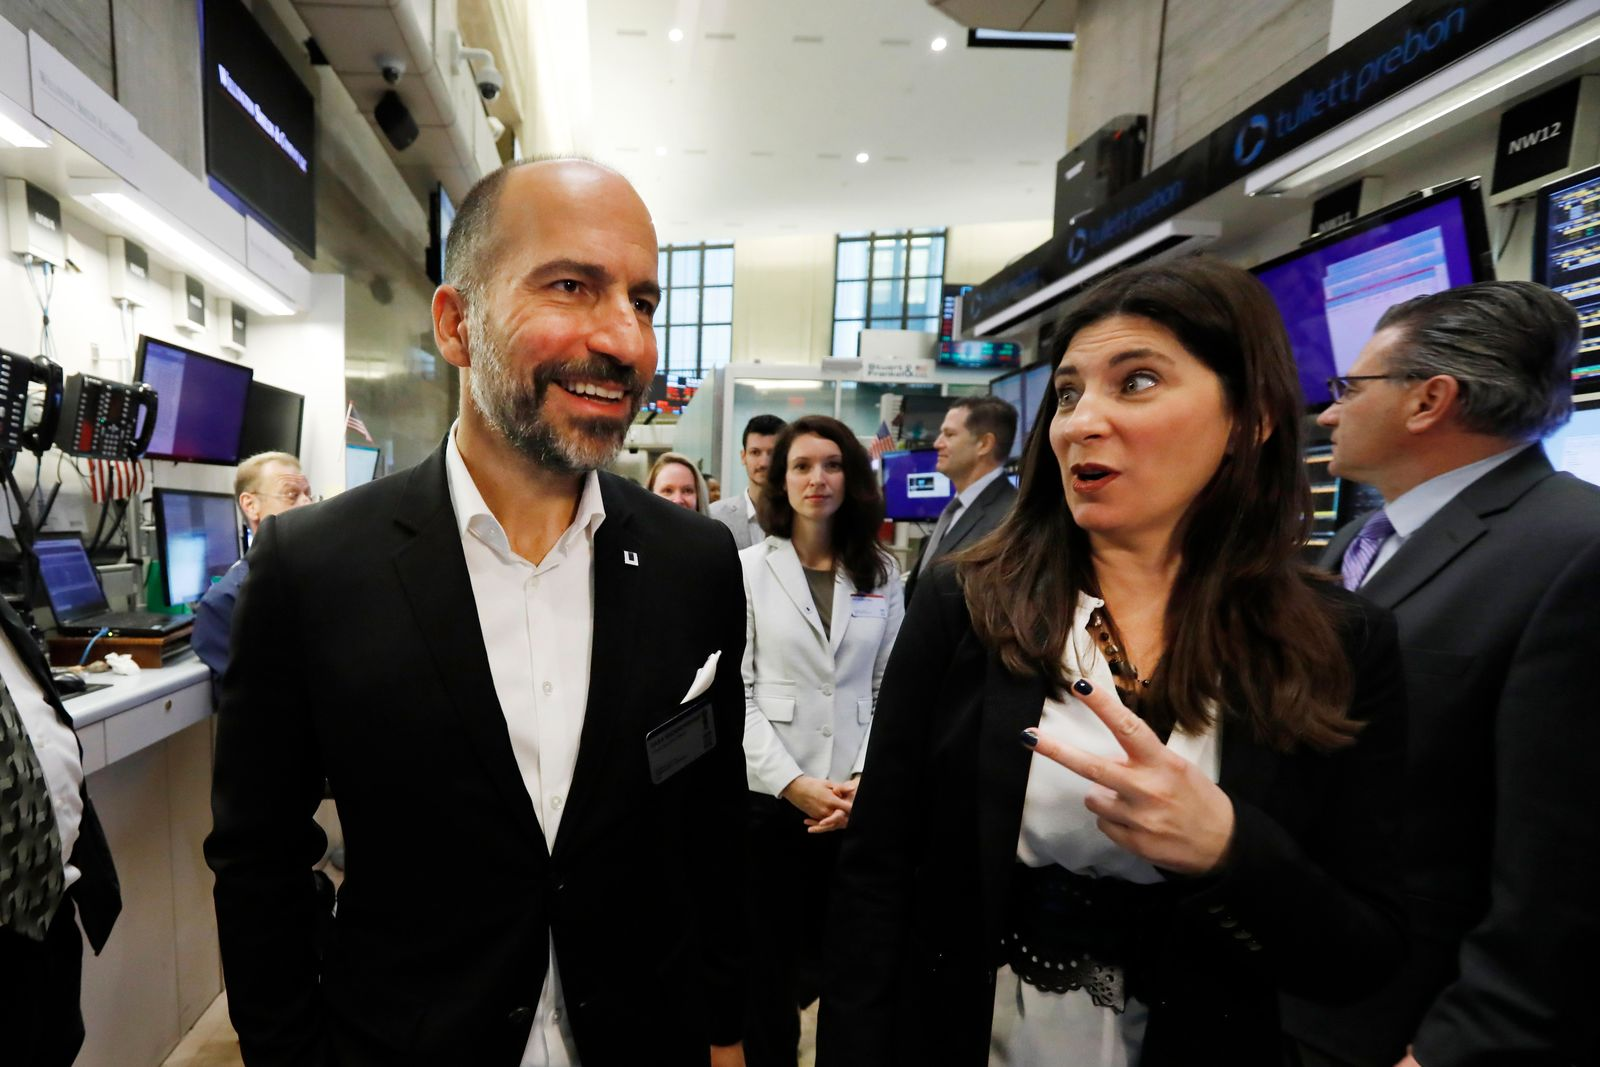 Uber CEO Dara Khosrowshahi, left, walks with Stacy Cunningham, president of the New York Stock Exchange, prior to his company holding its initial public offering, Friday, May 10, 2019. (AP Photo/Richard Drew)